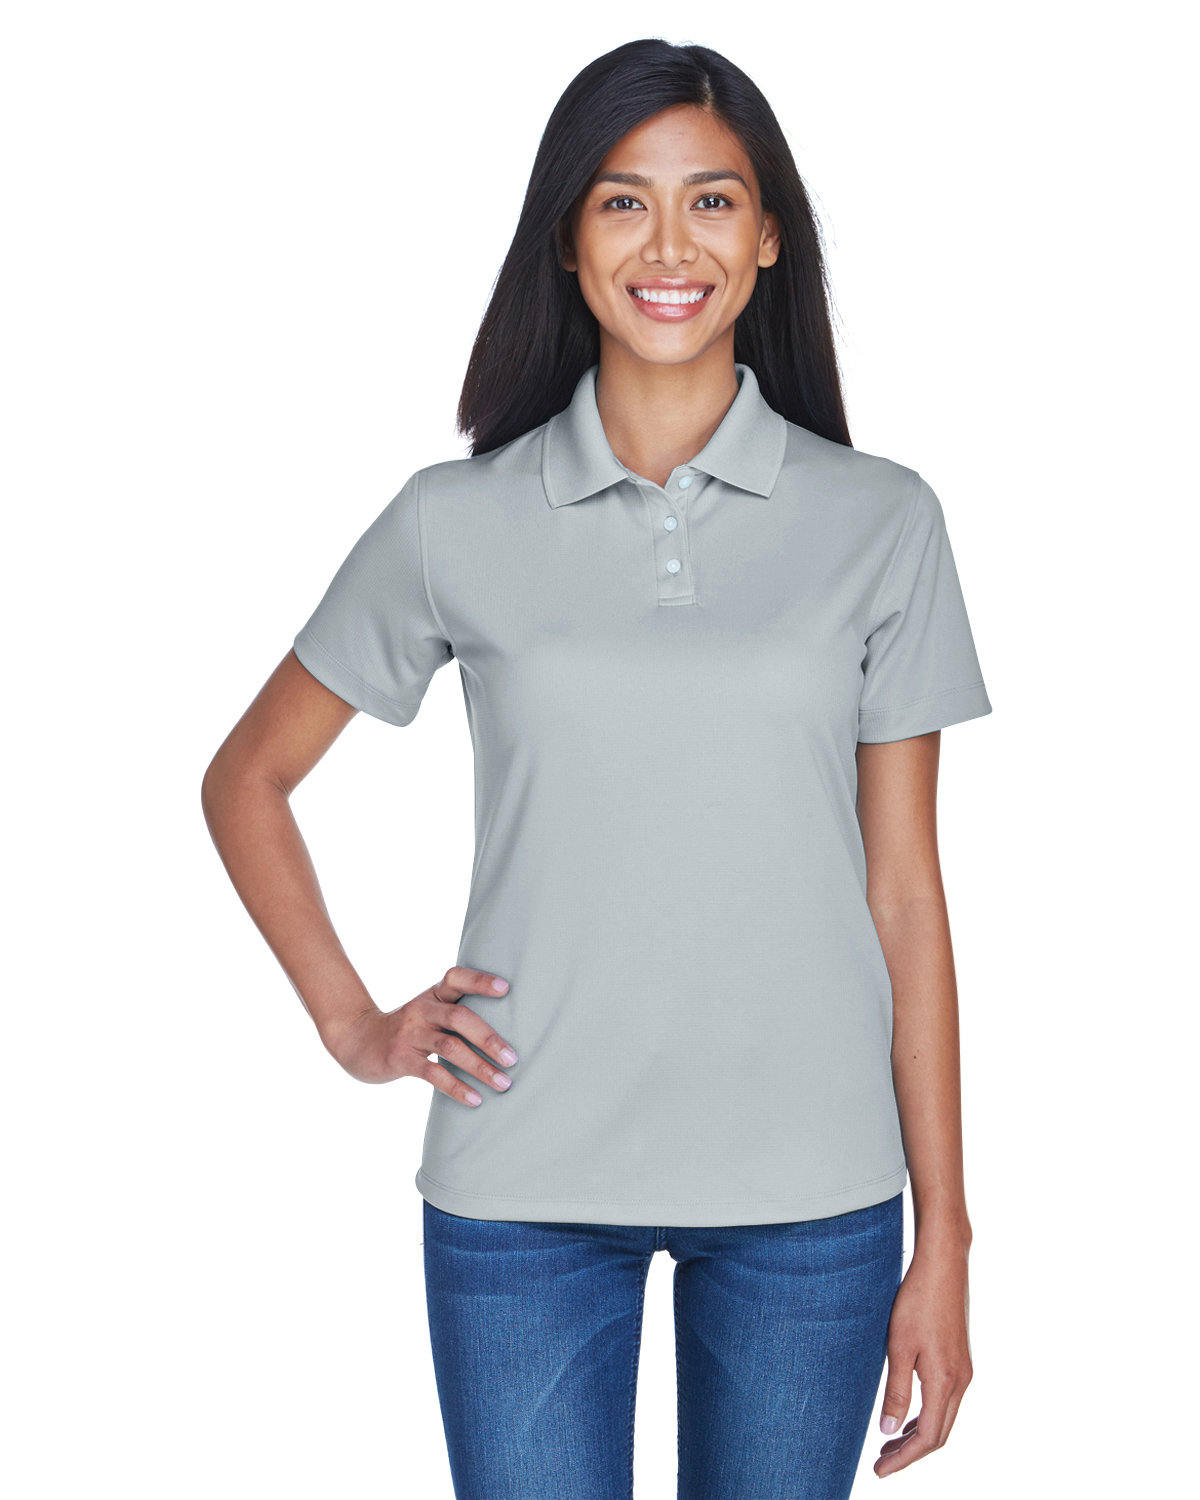 UltraClub Ladies' Cool & Dry Stain-Release Performance Polo SILVER